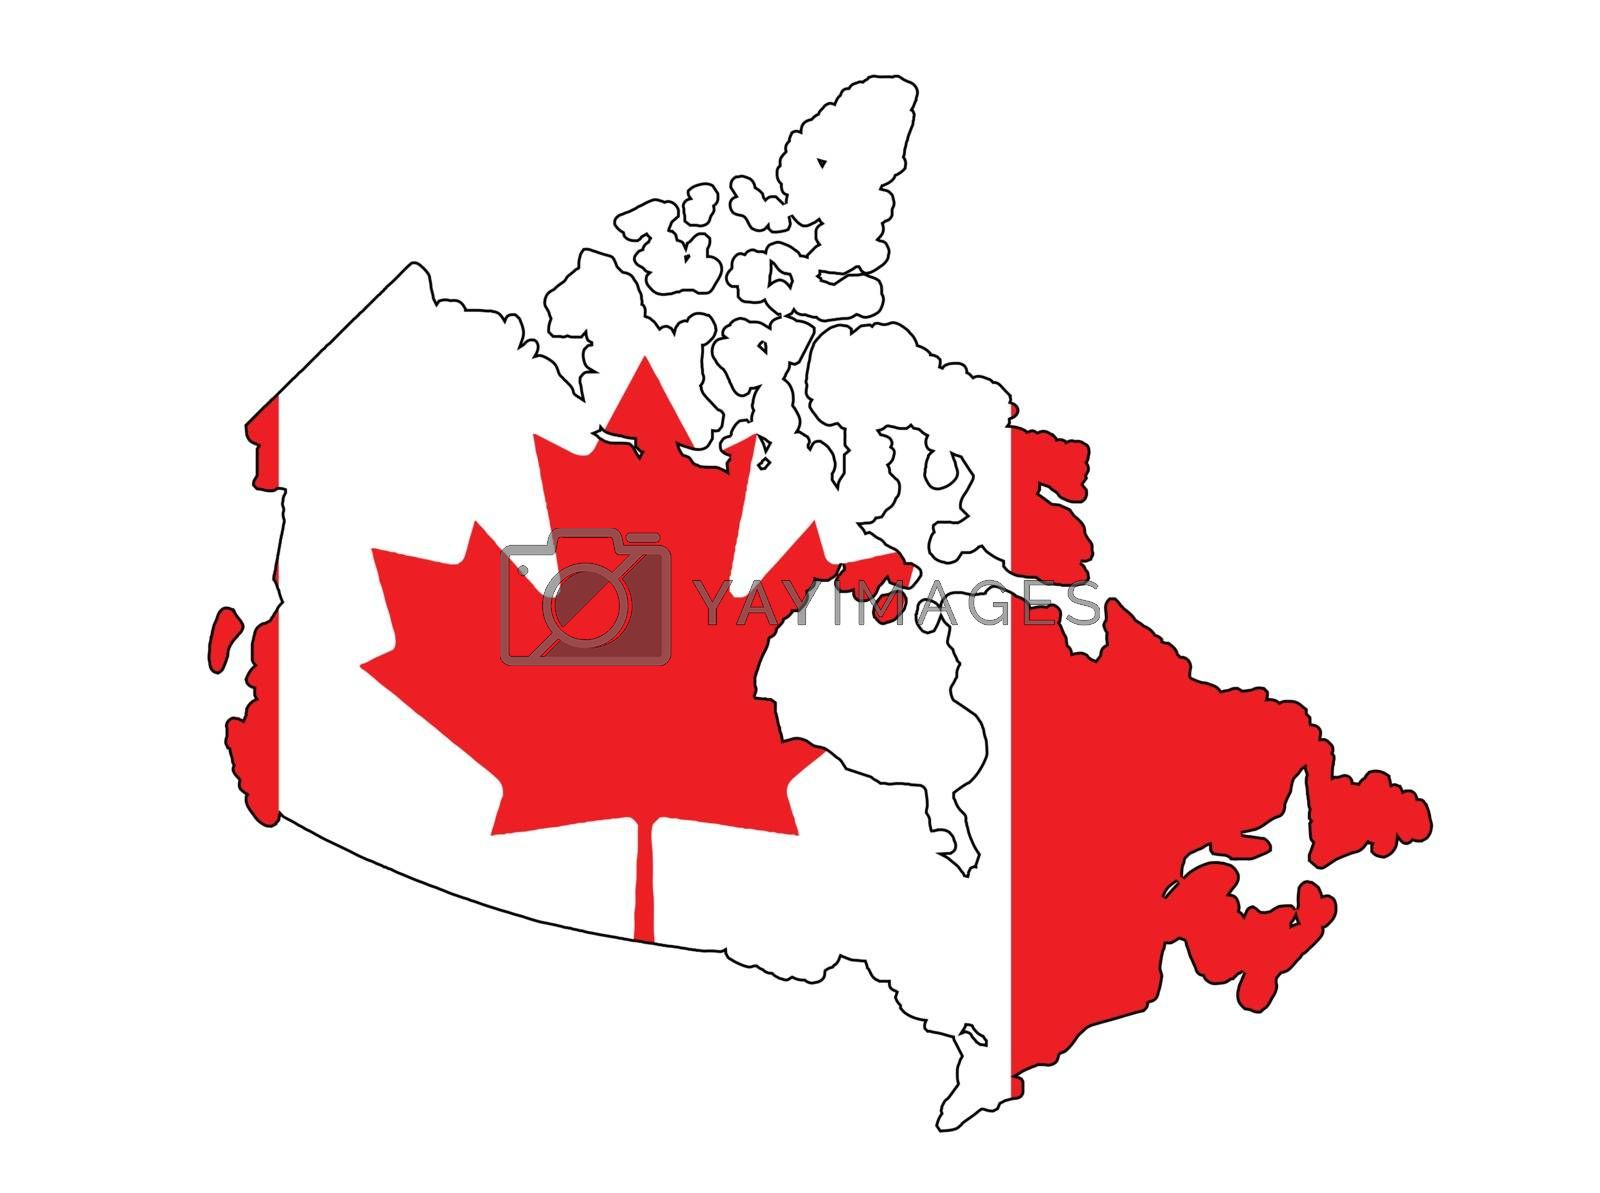 Outline map of Canada over a white background with the national flag background